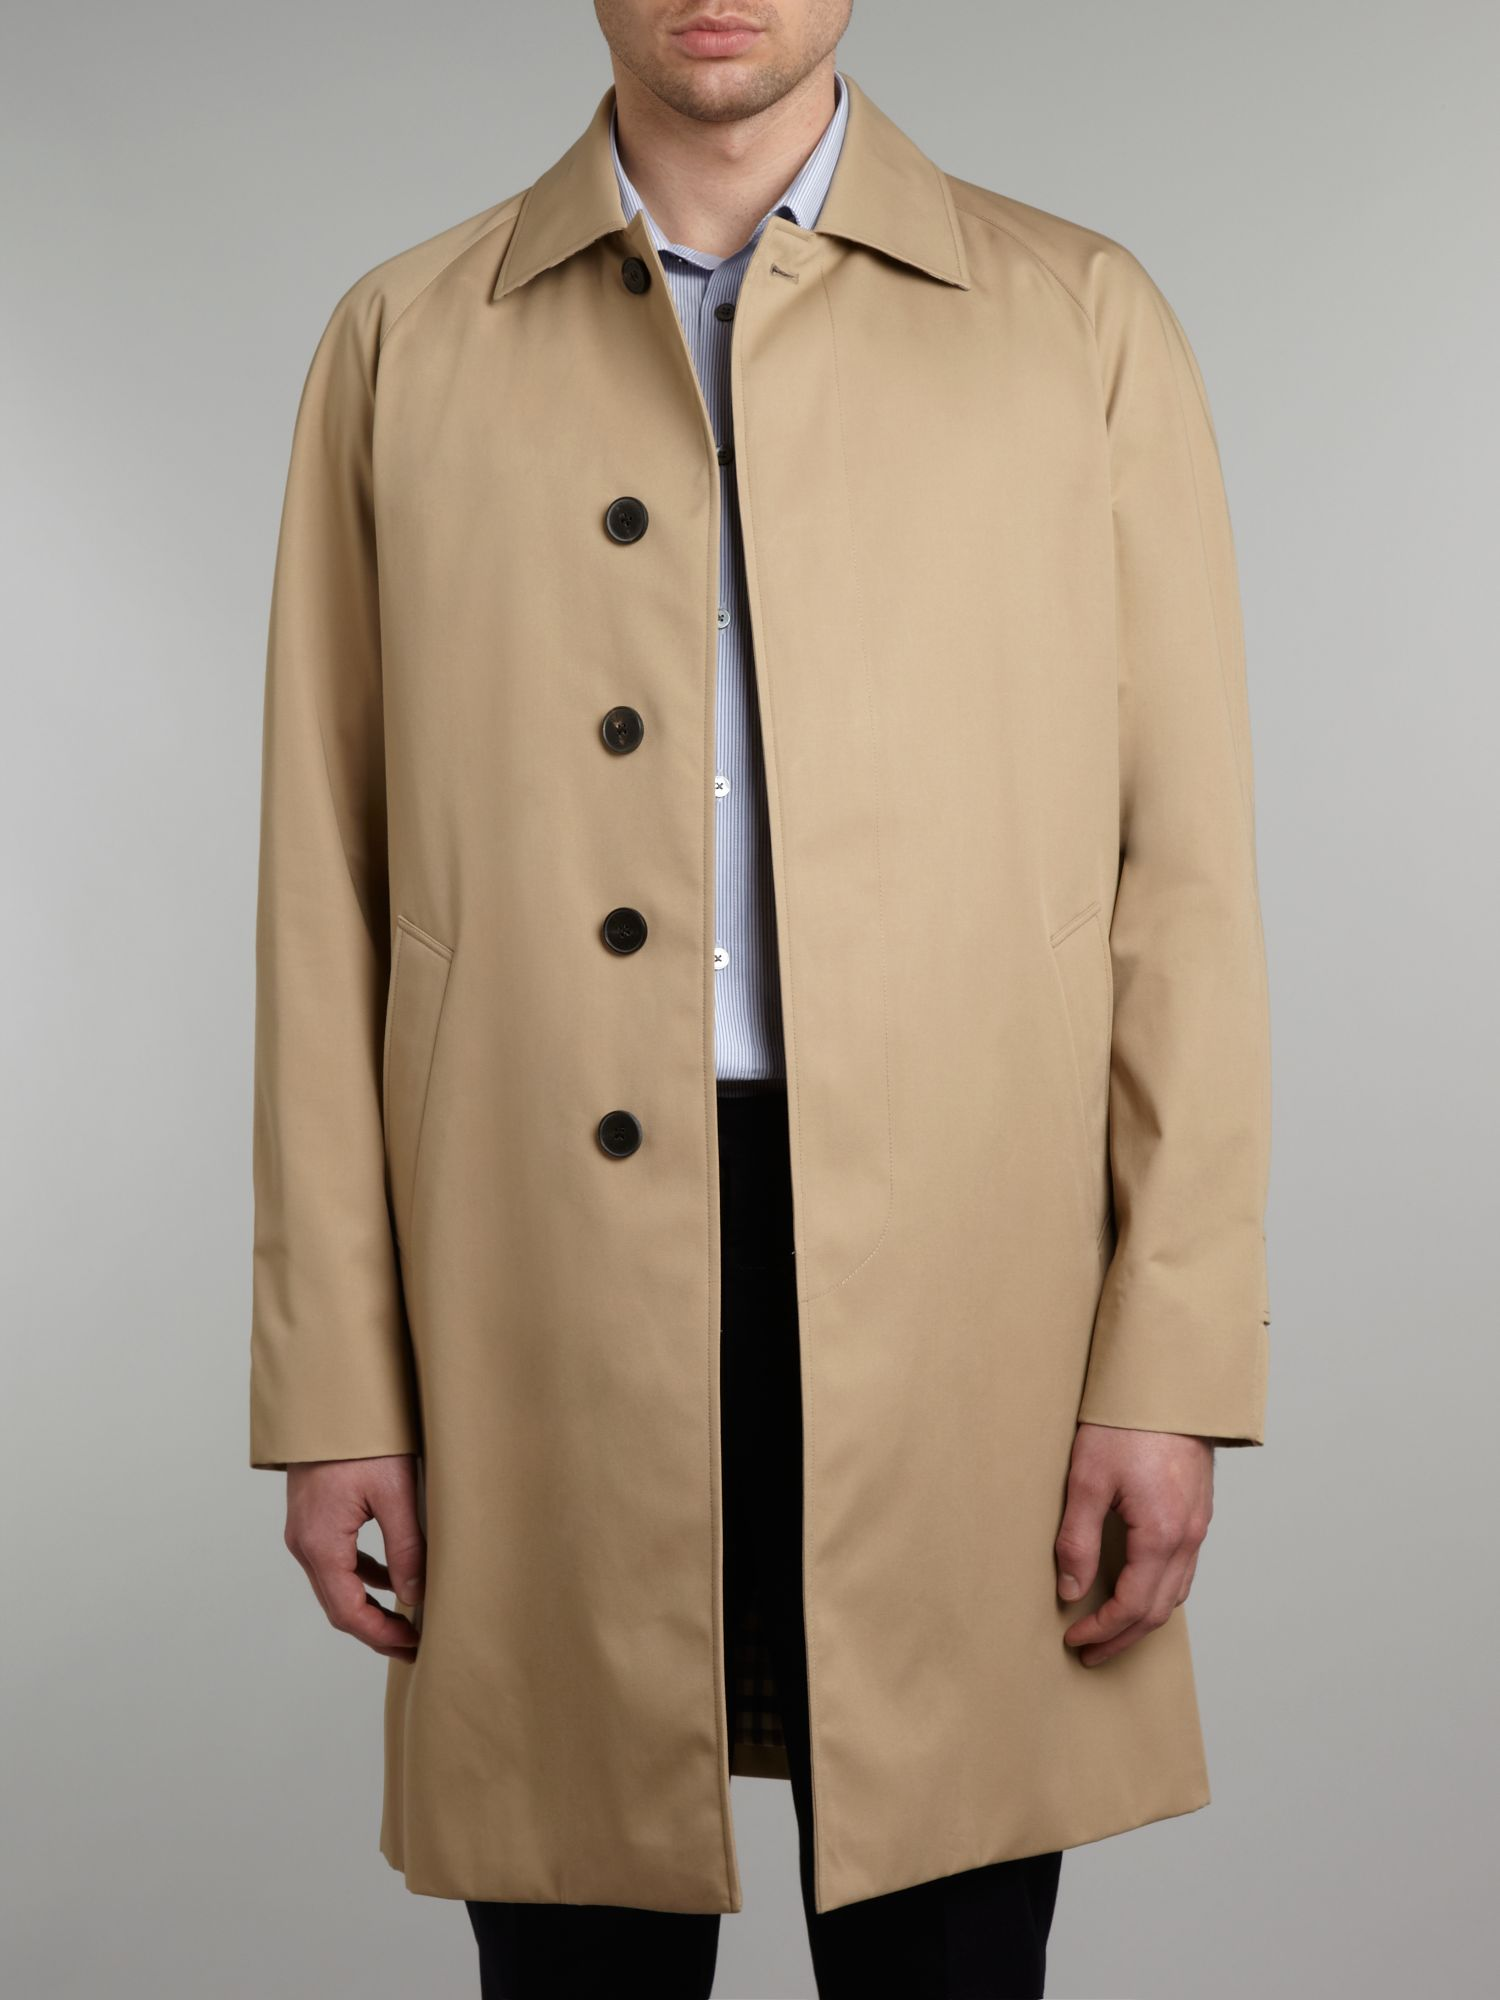 Sheerwater raincoat